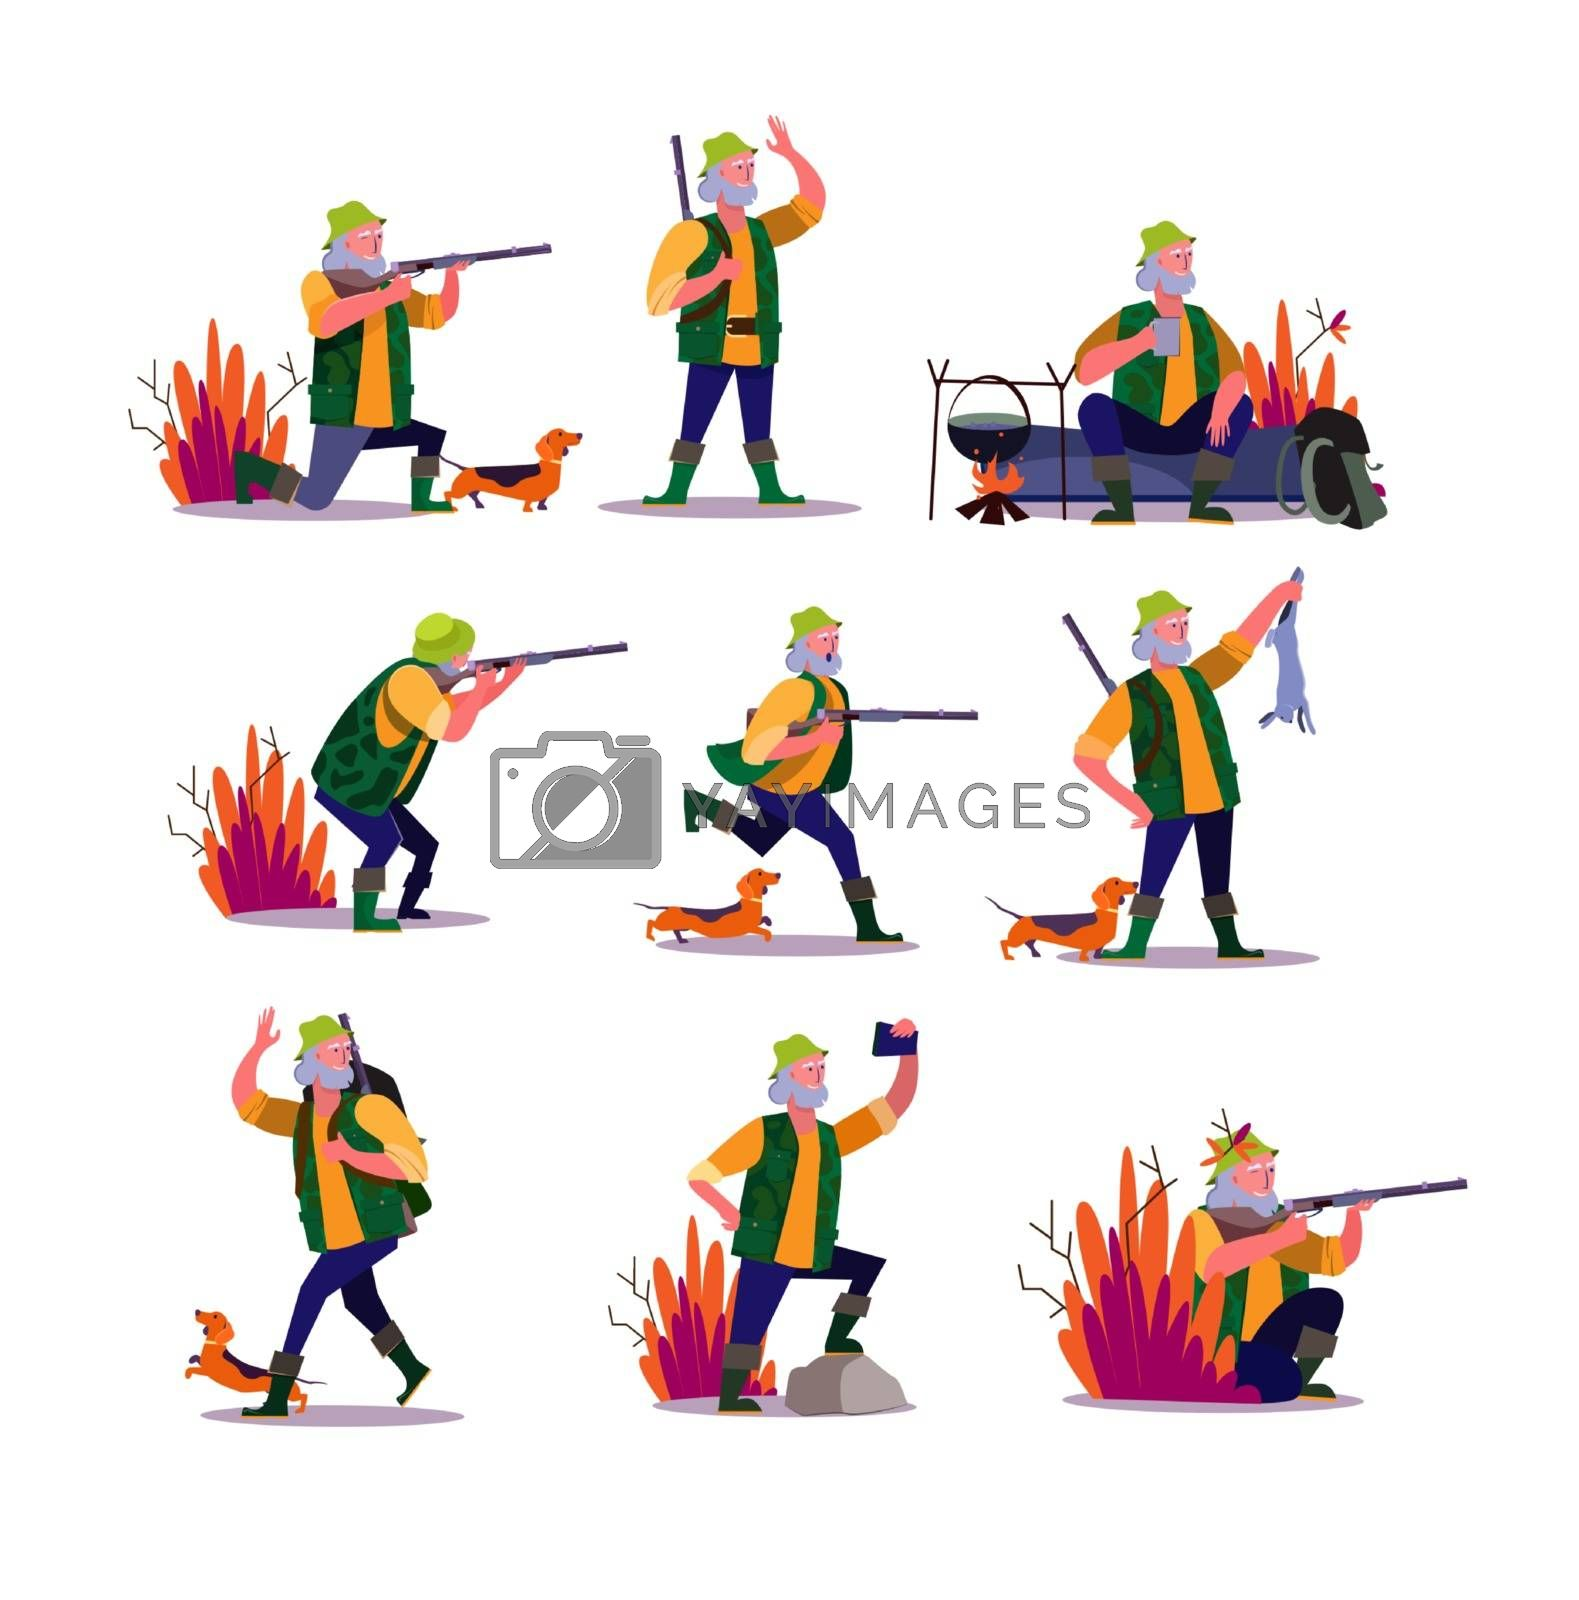 Hunting with dog set. Hunter shooting riffle, fighting gun, cooking over fire outdoors, taking selfie. People concept. Vector illustration for topics like activity, hobby active lifestyle